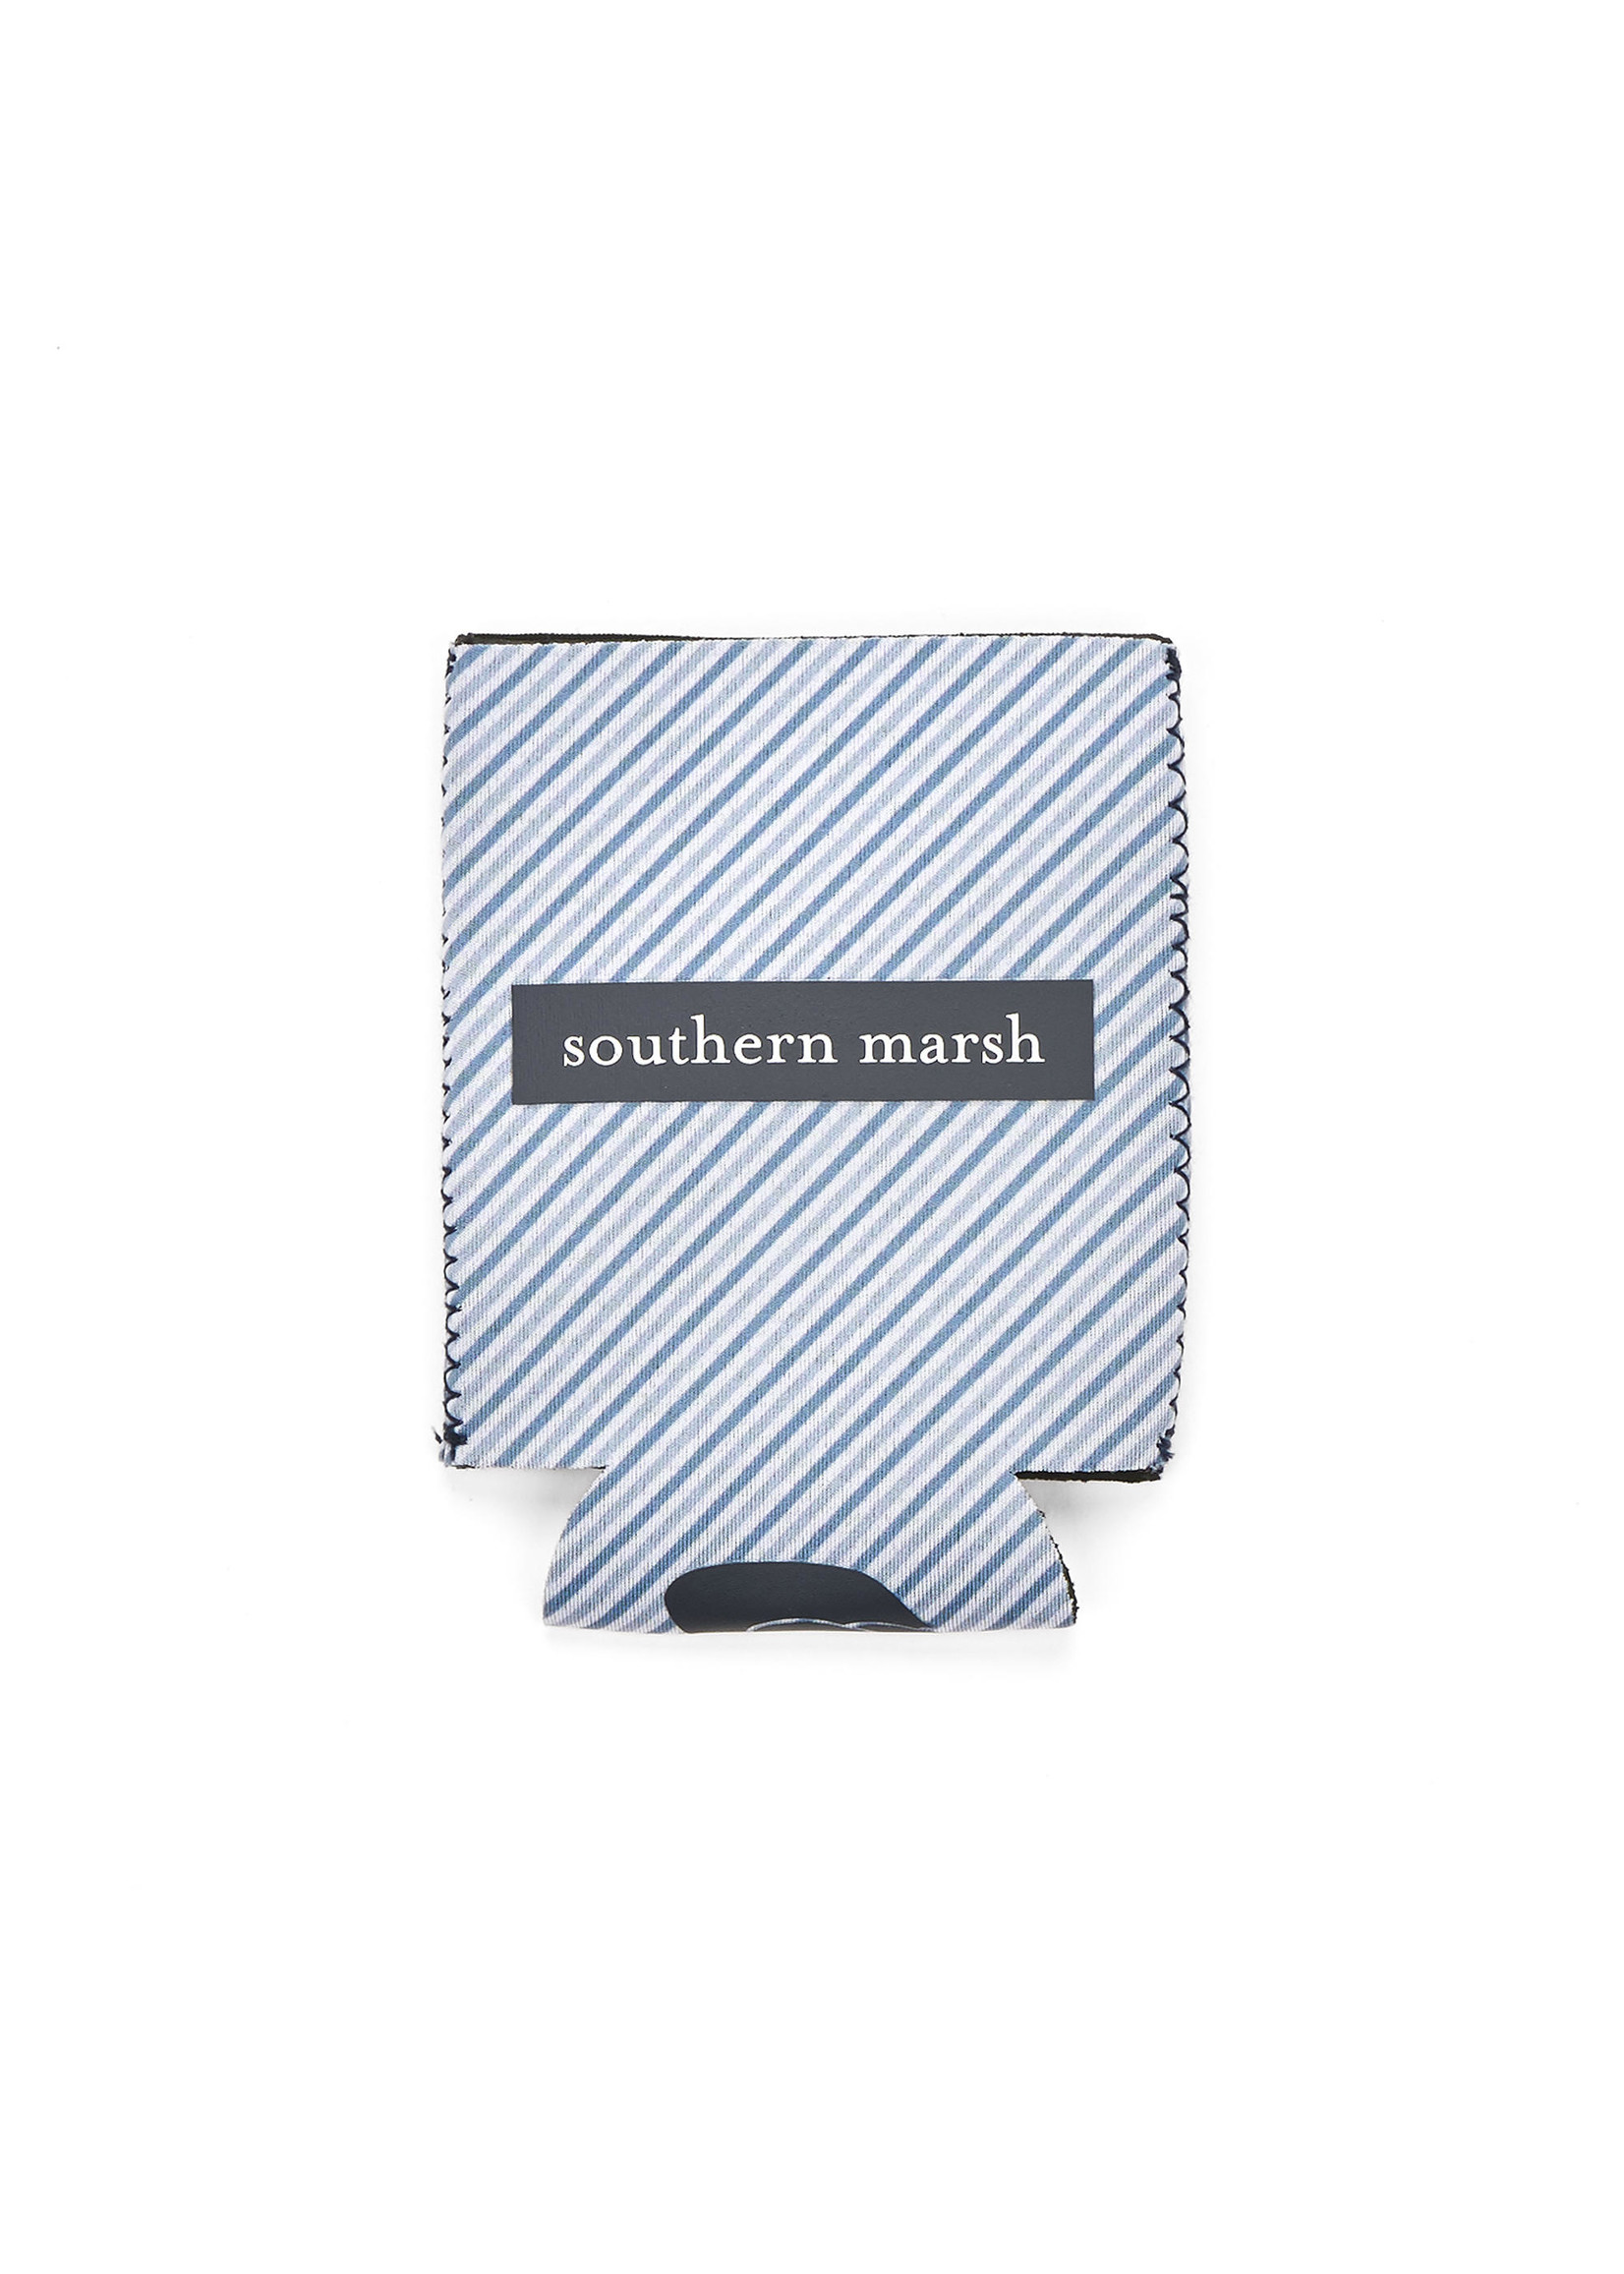 Southern Marsh Southern Marsh Coozie - Limited Edition